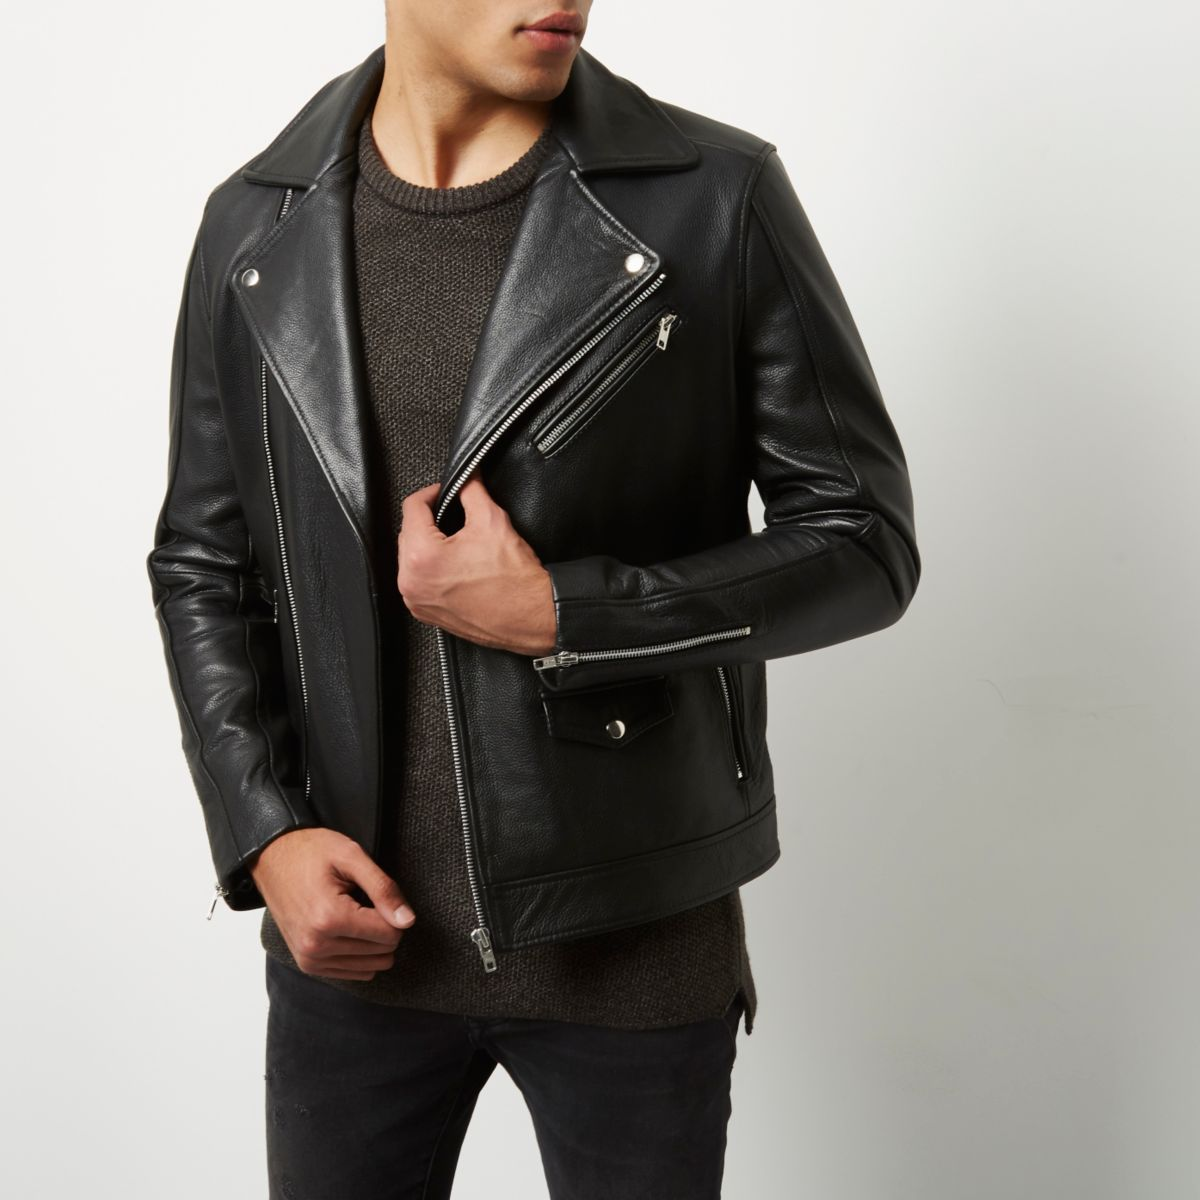 Black leather biker jacket - Jackets - Coats & Jackets - men